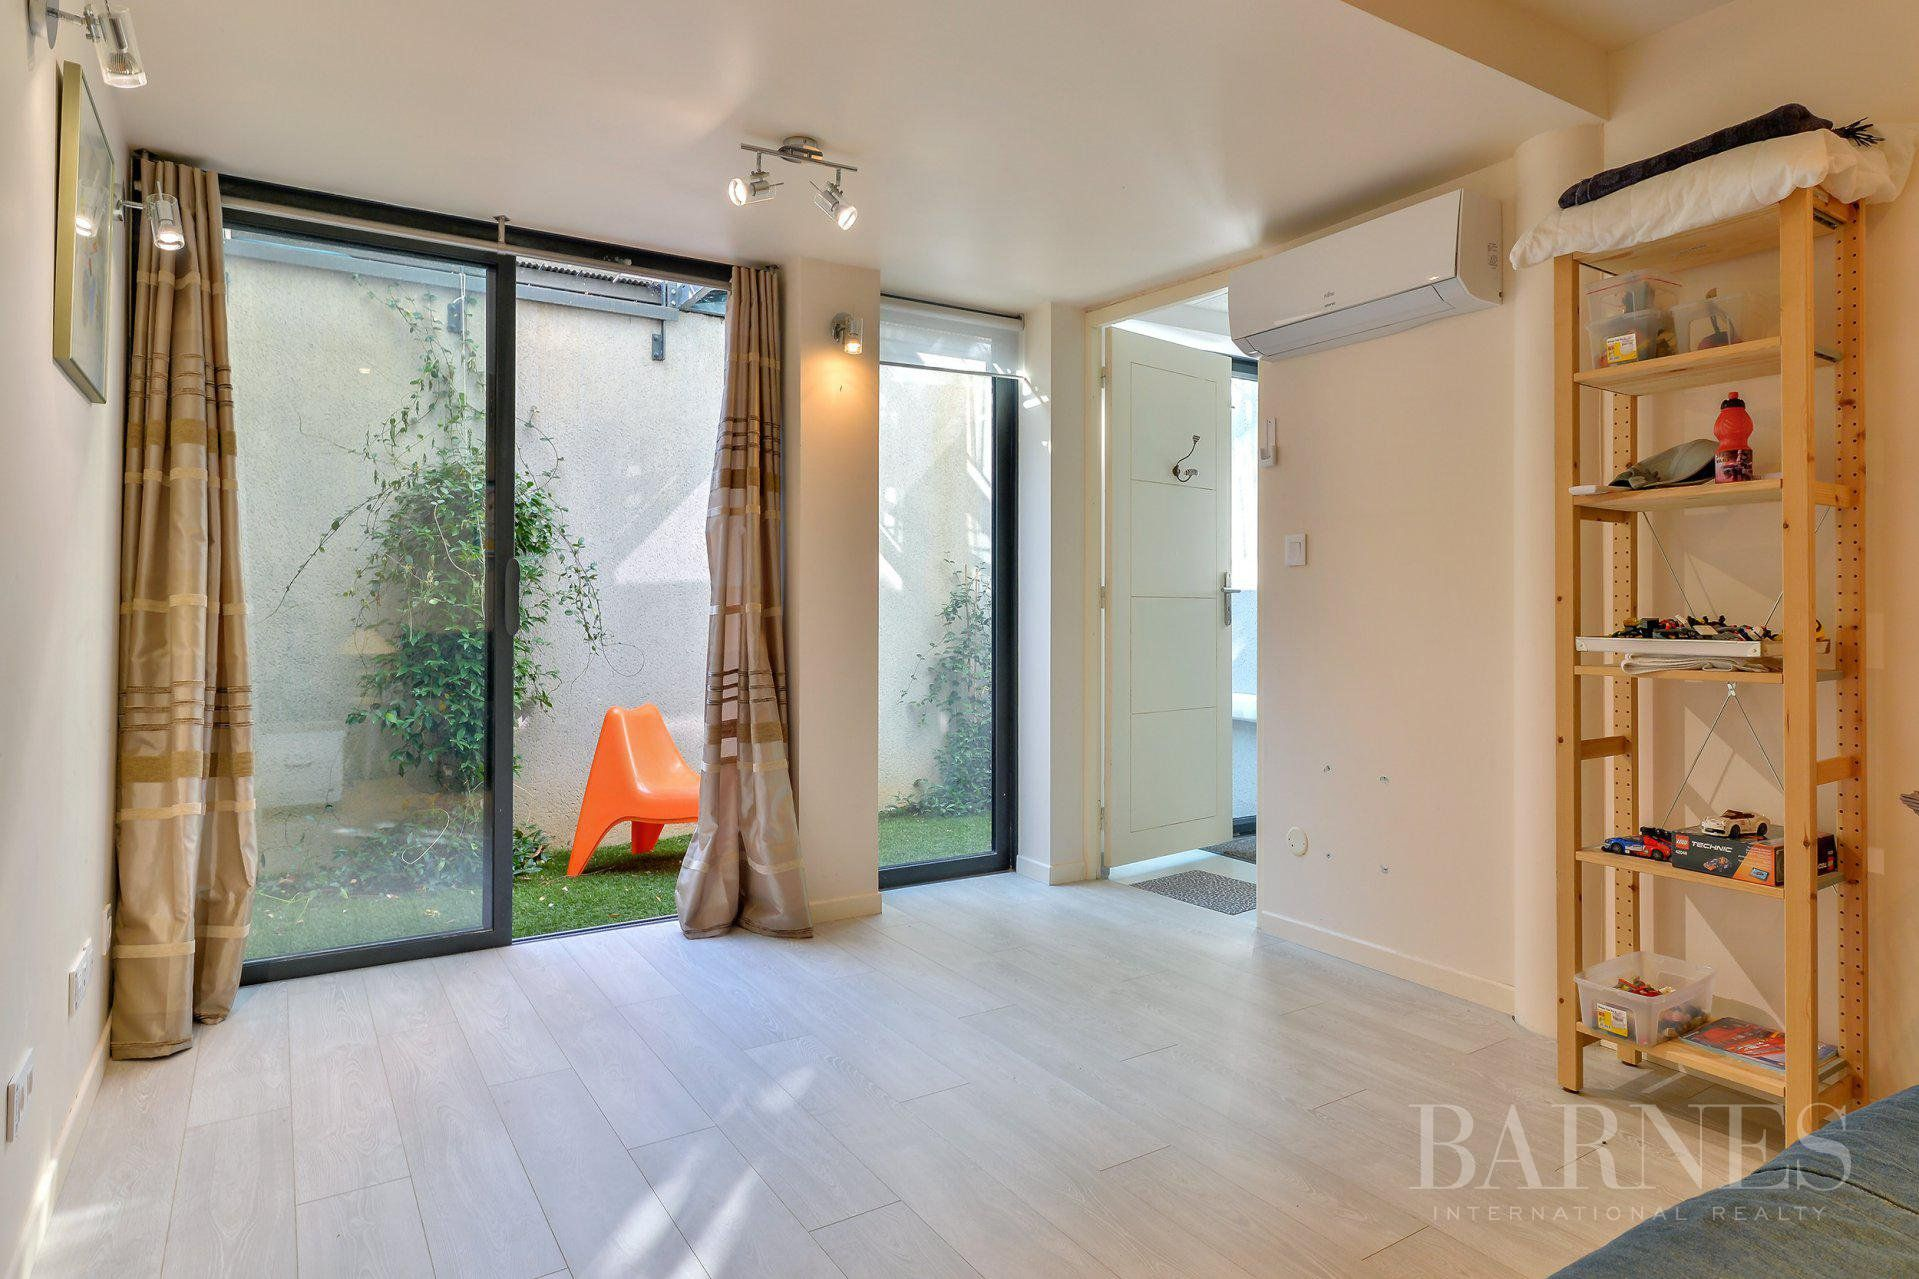 Lyon 3 - Montchat - House of 200 sqm - Garden of 254 sqm - 5 bedrooms